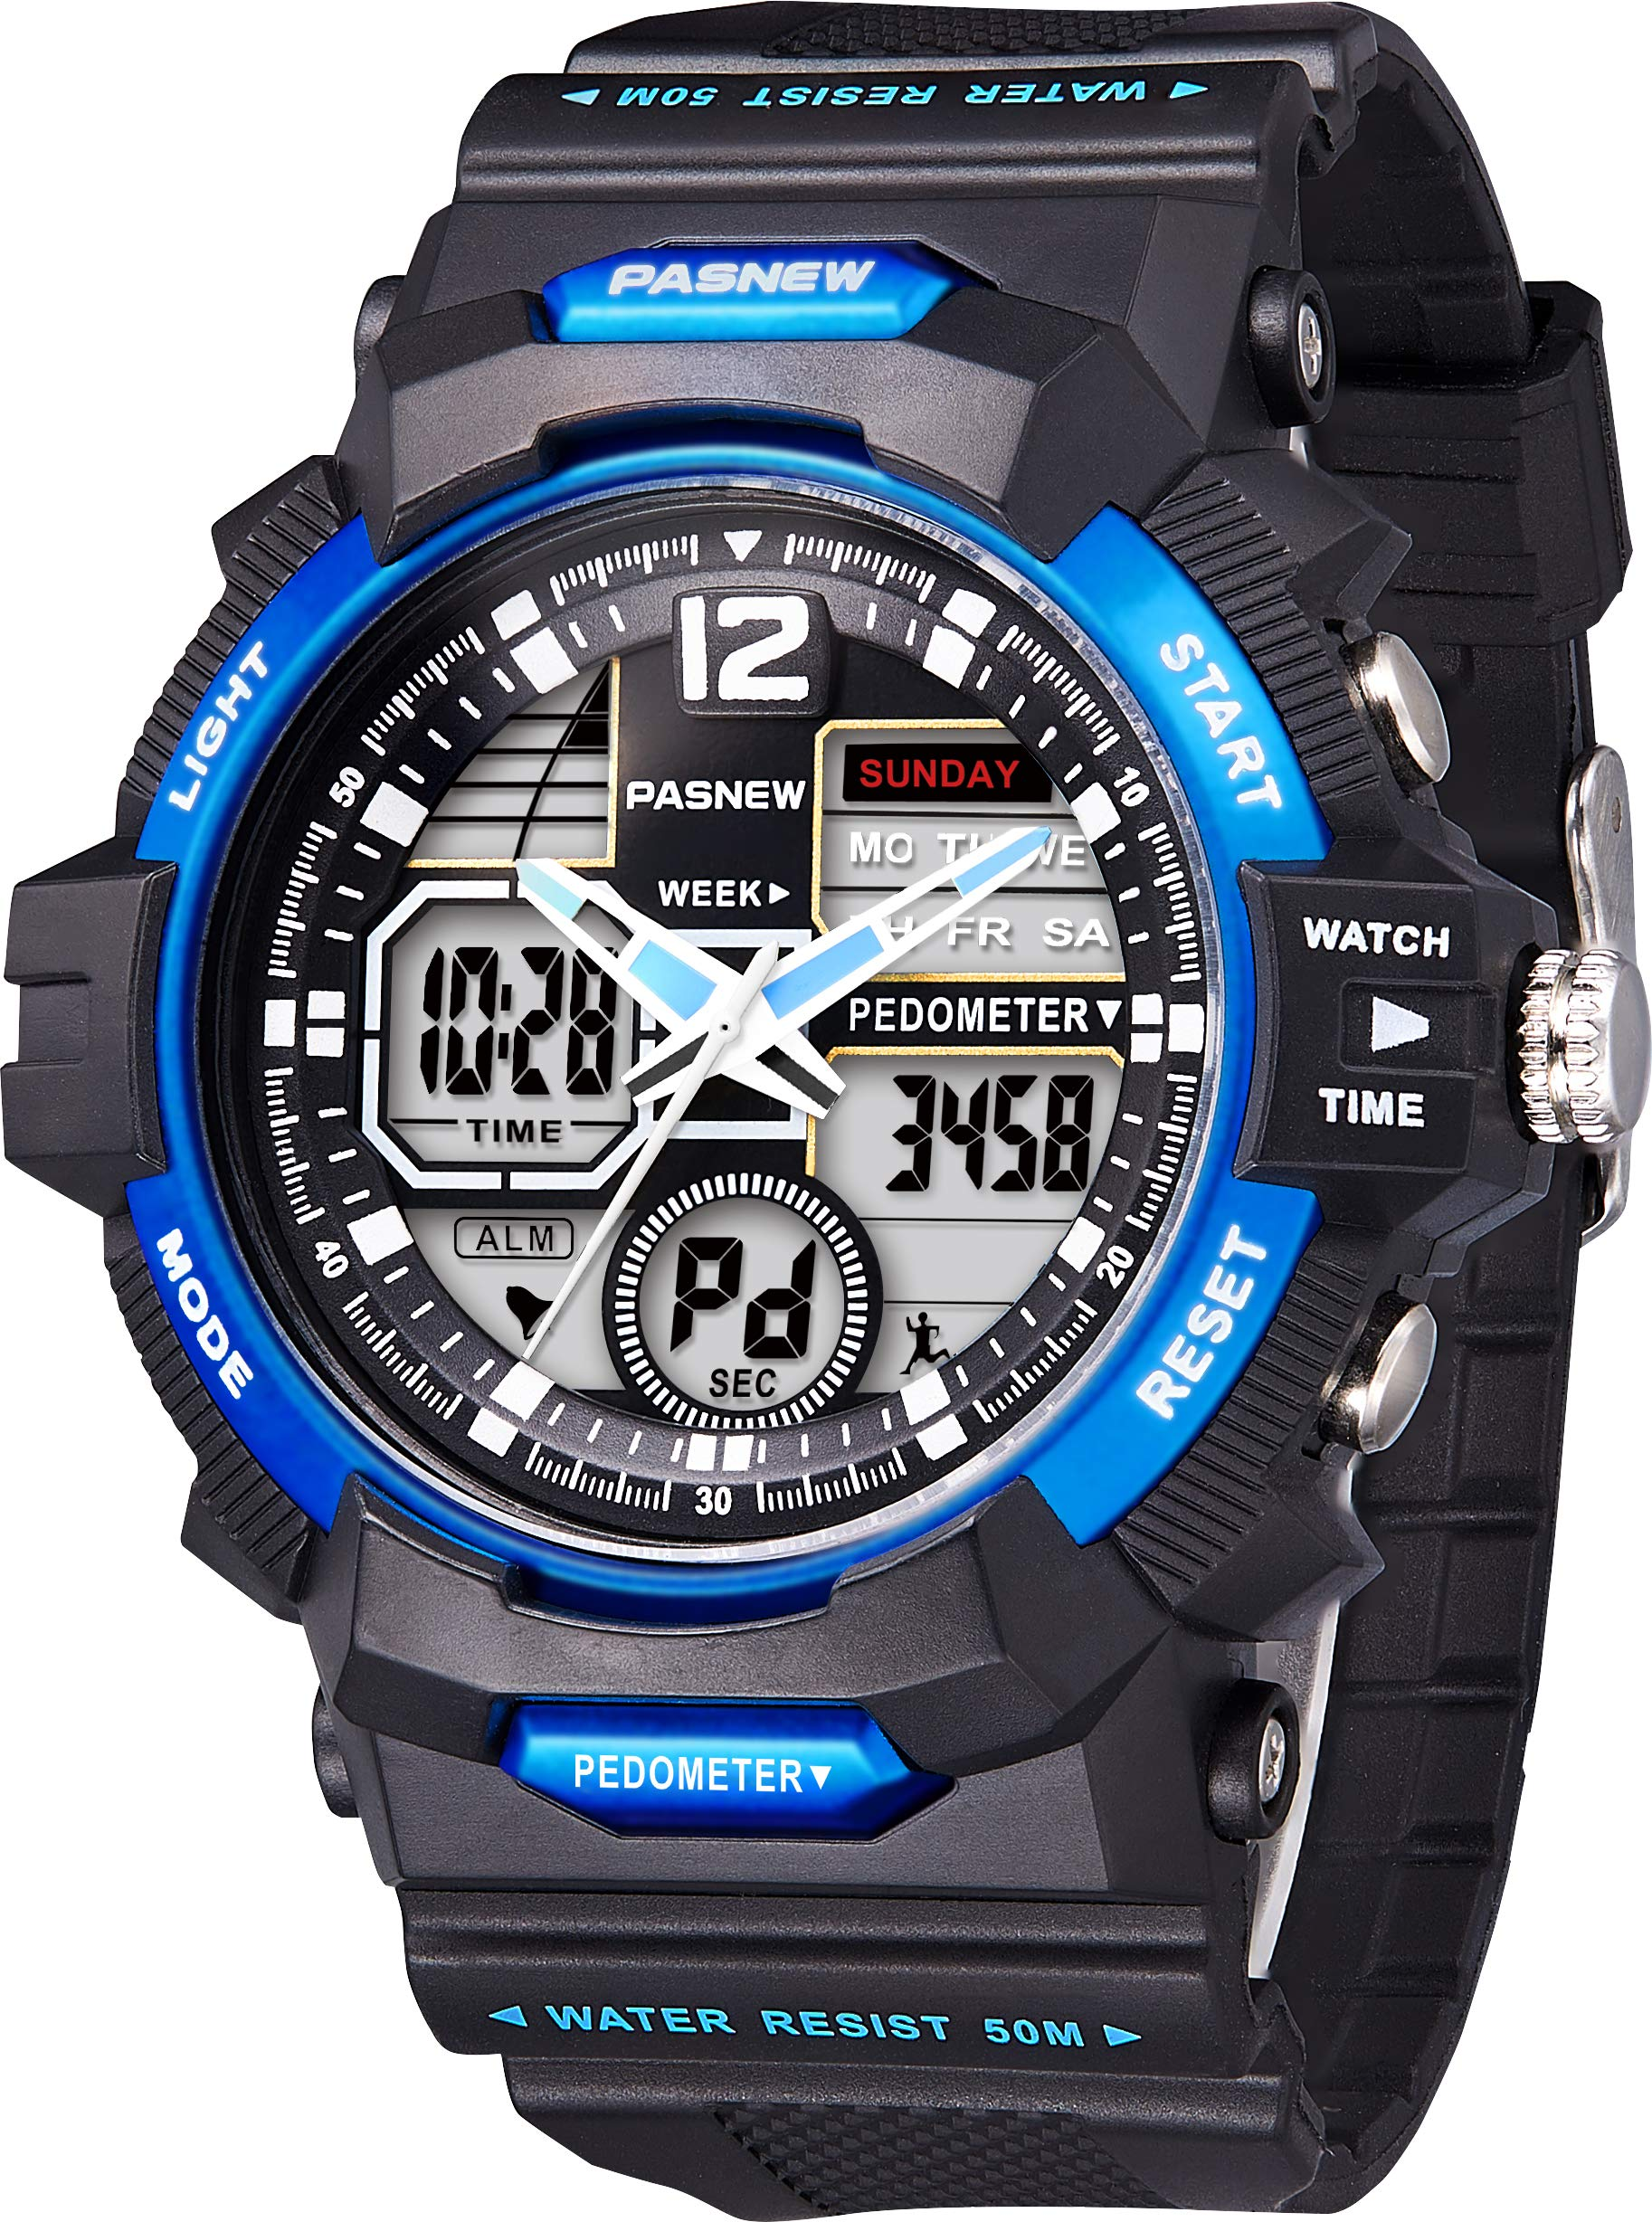 PASNEW Kids Watch Multi Function Digital-Analog Sport Watches for 8-Year Old or Above Children-Black Blue